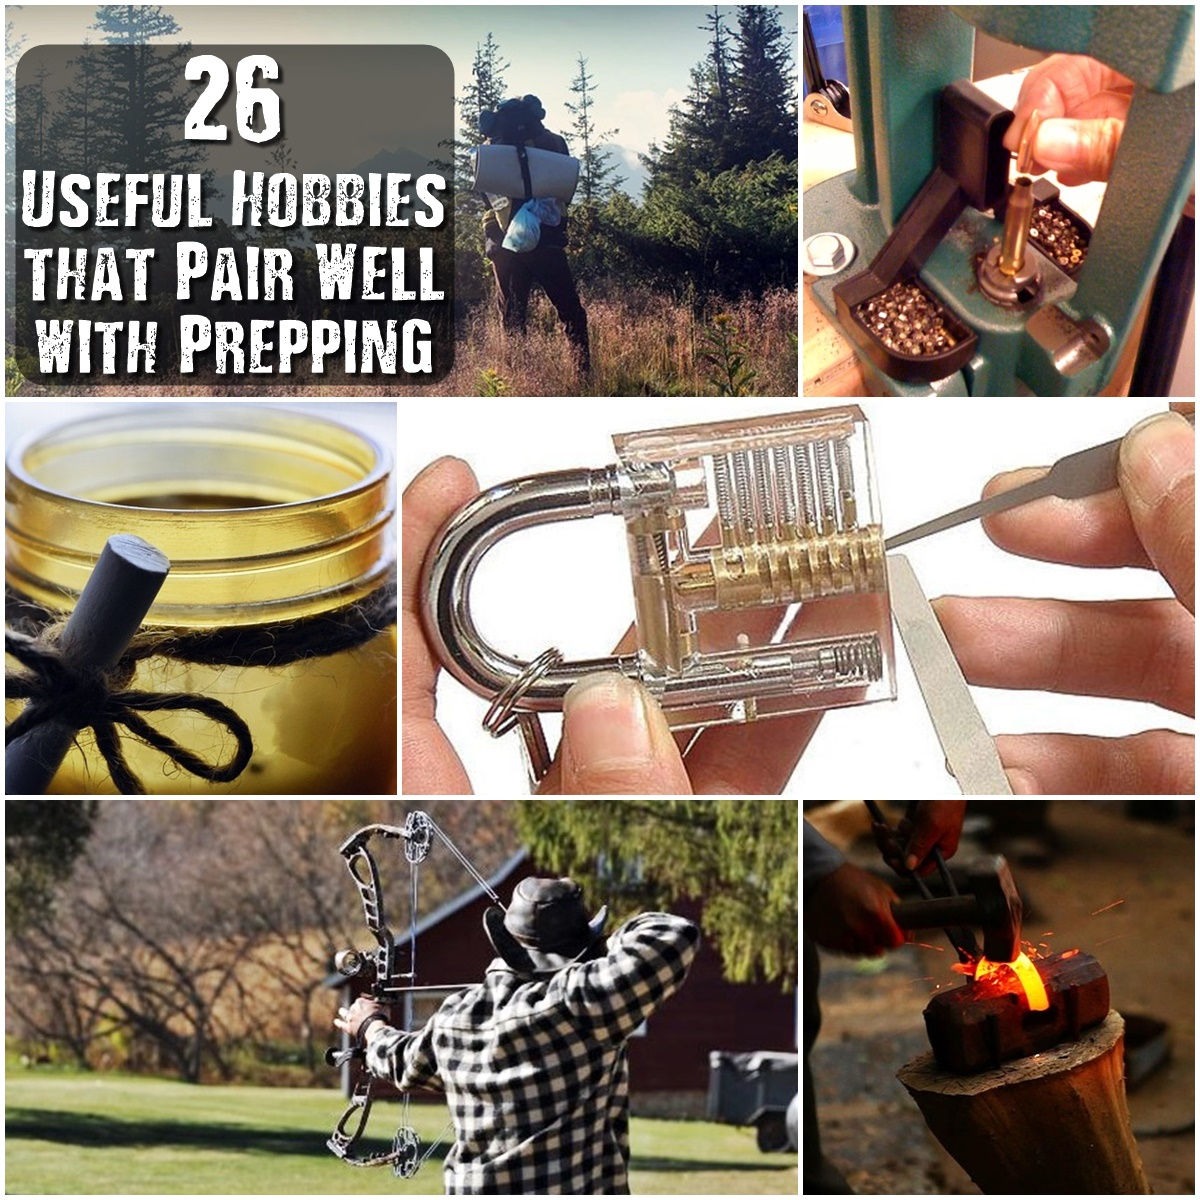 26 Useful Hobbies that Pair Well with Prepping